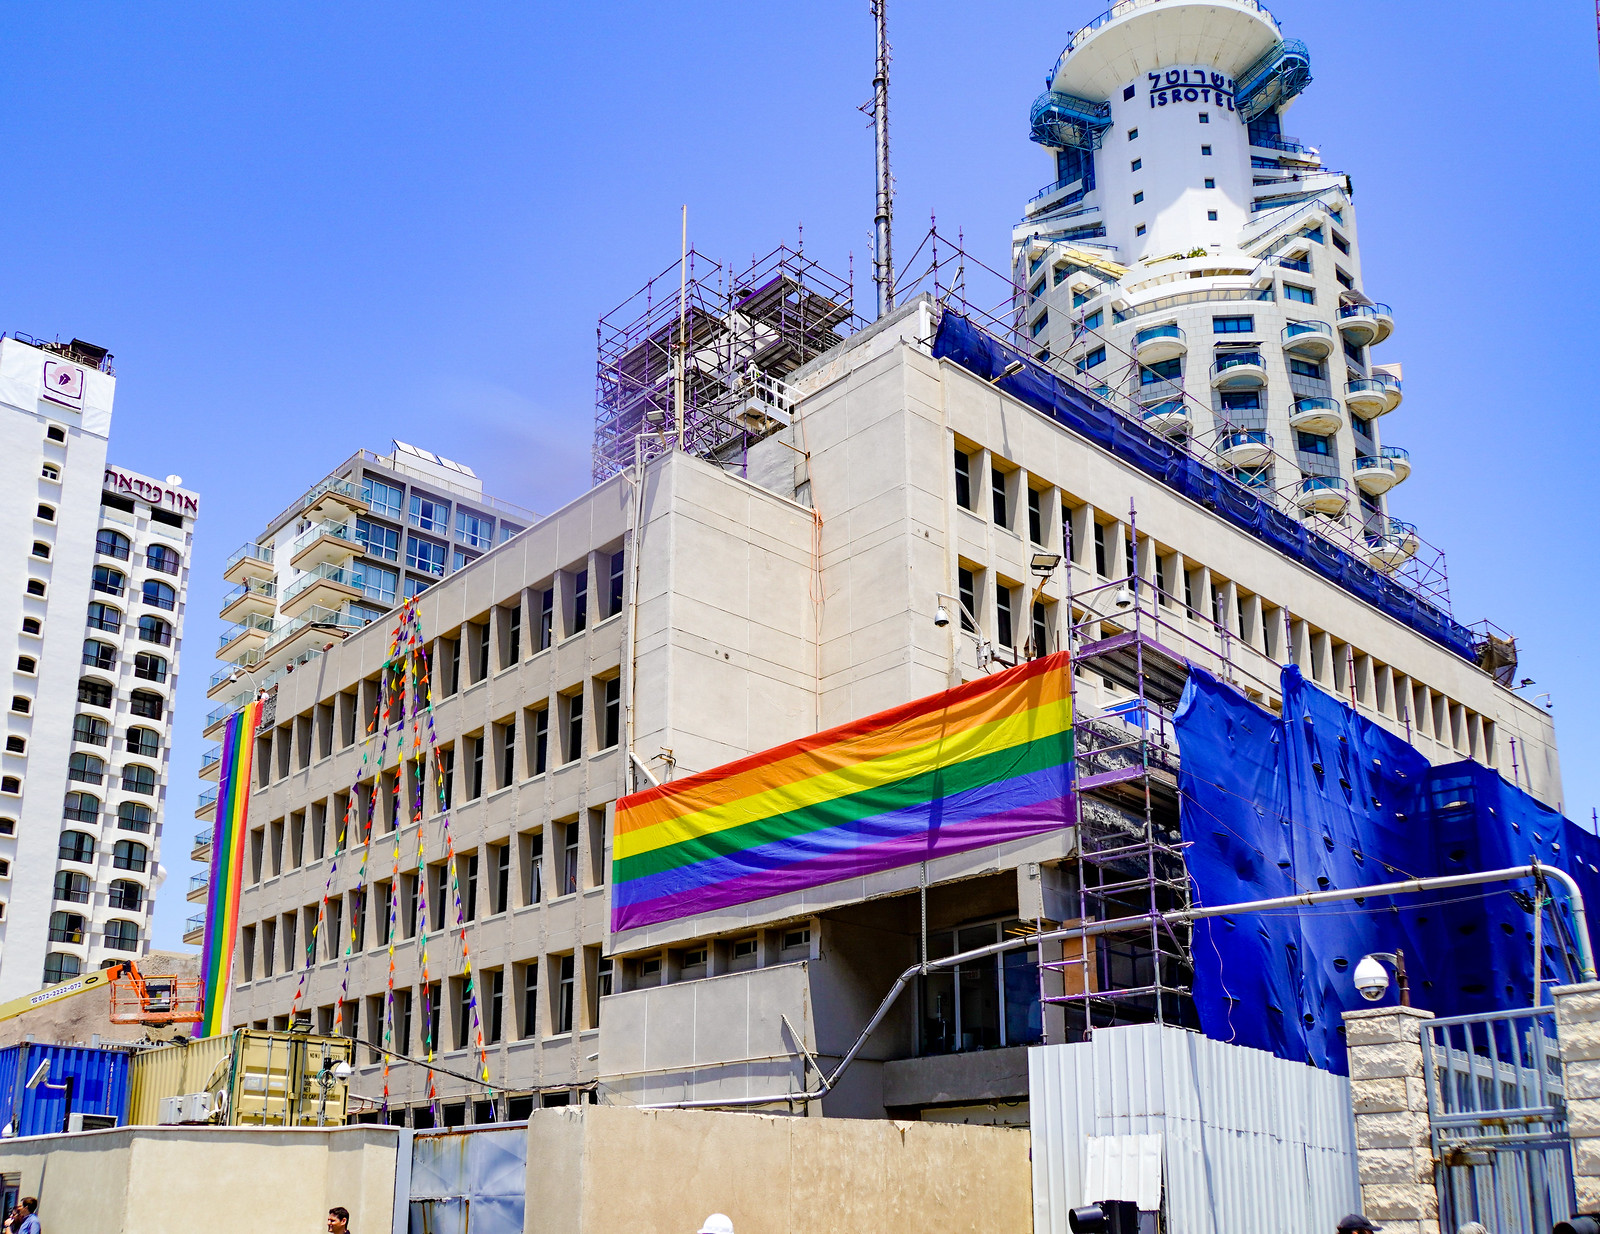 Photo Friday: When the US Embassy showed the Pride Flag in Defiance, Tel Aviv, Israel